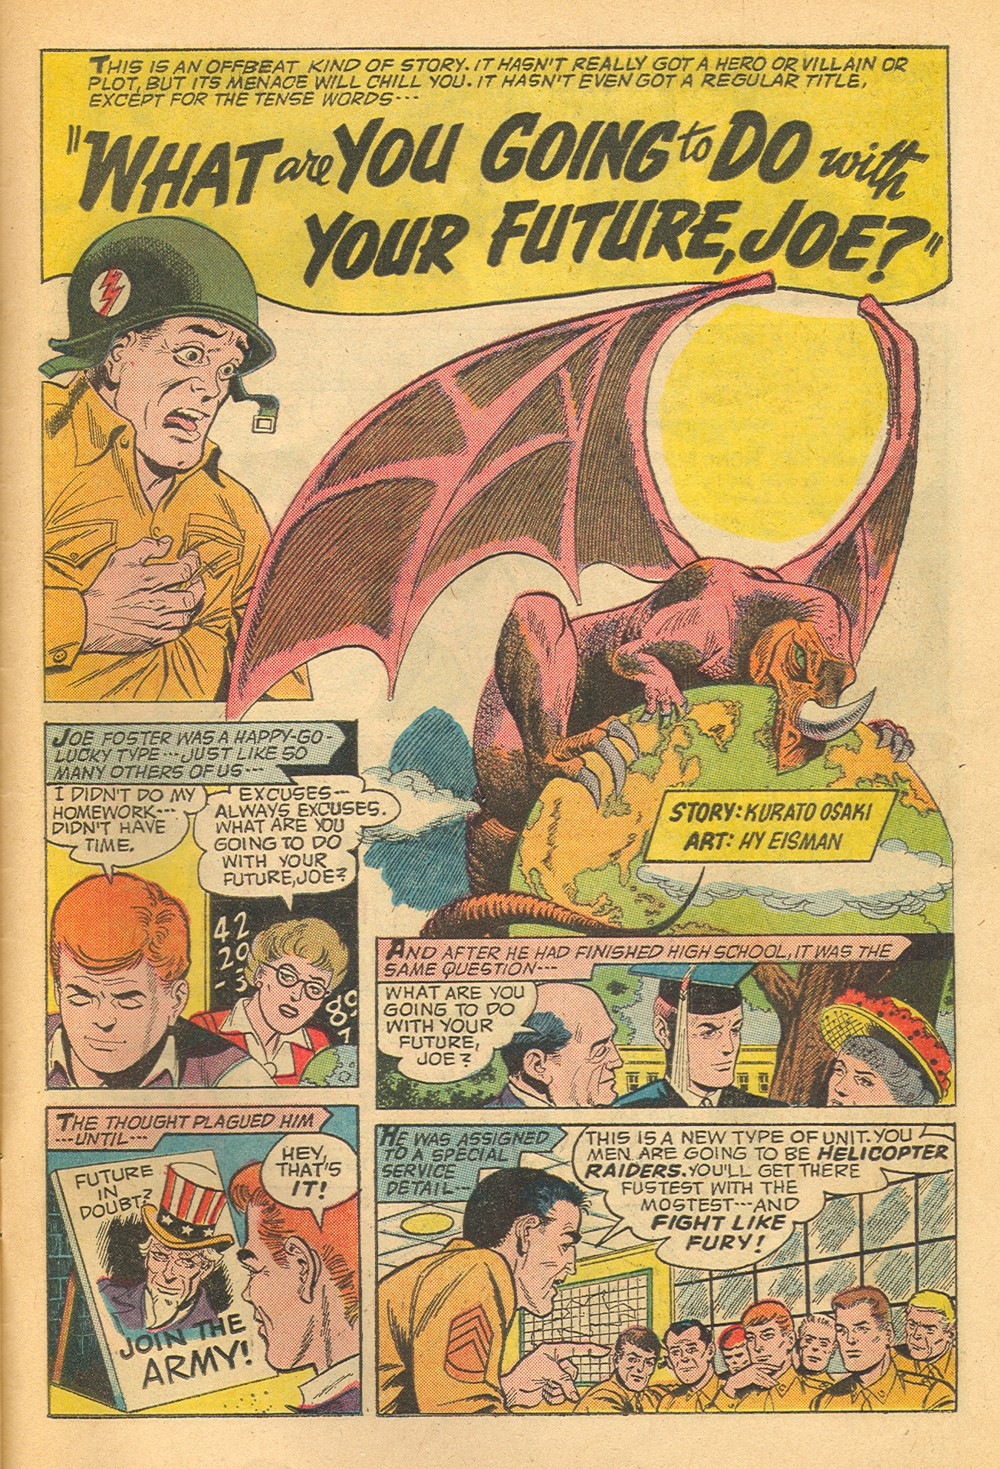 Adventures Into the Unknown (1948) #158 pg.25, art by Hy Eisman.